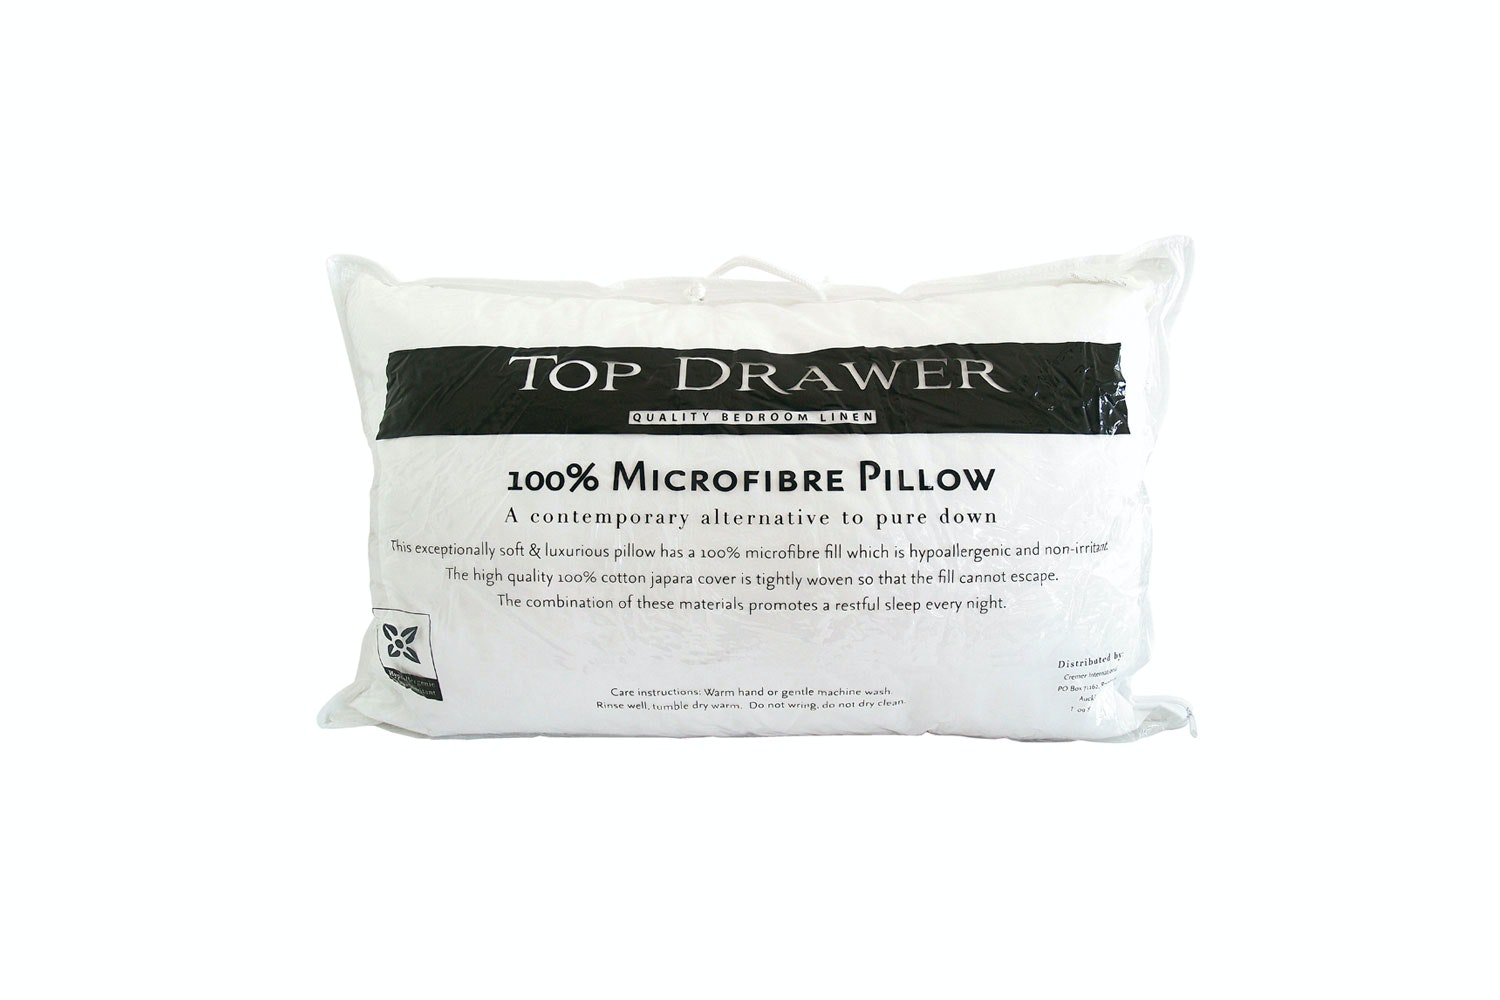 Top Drawer Microfibre Pillow - Medium